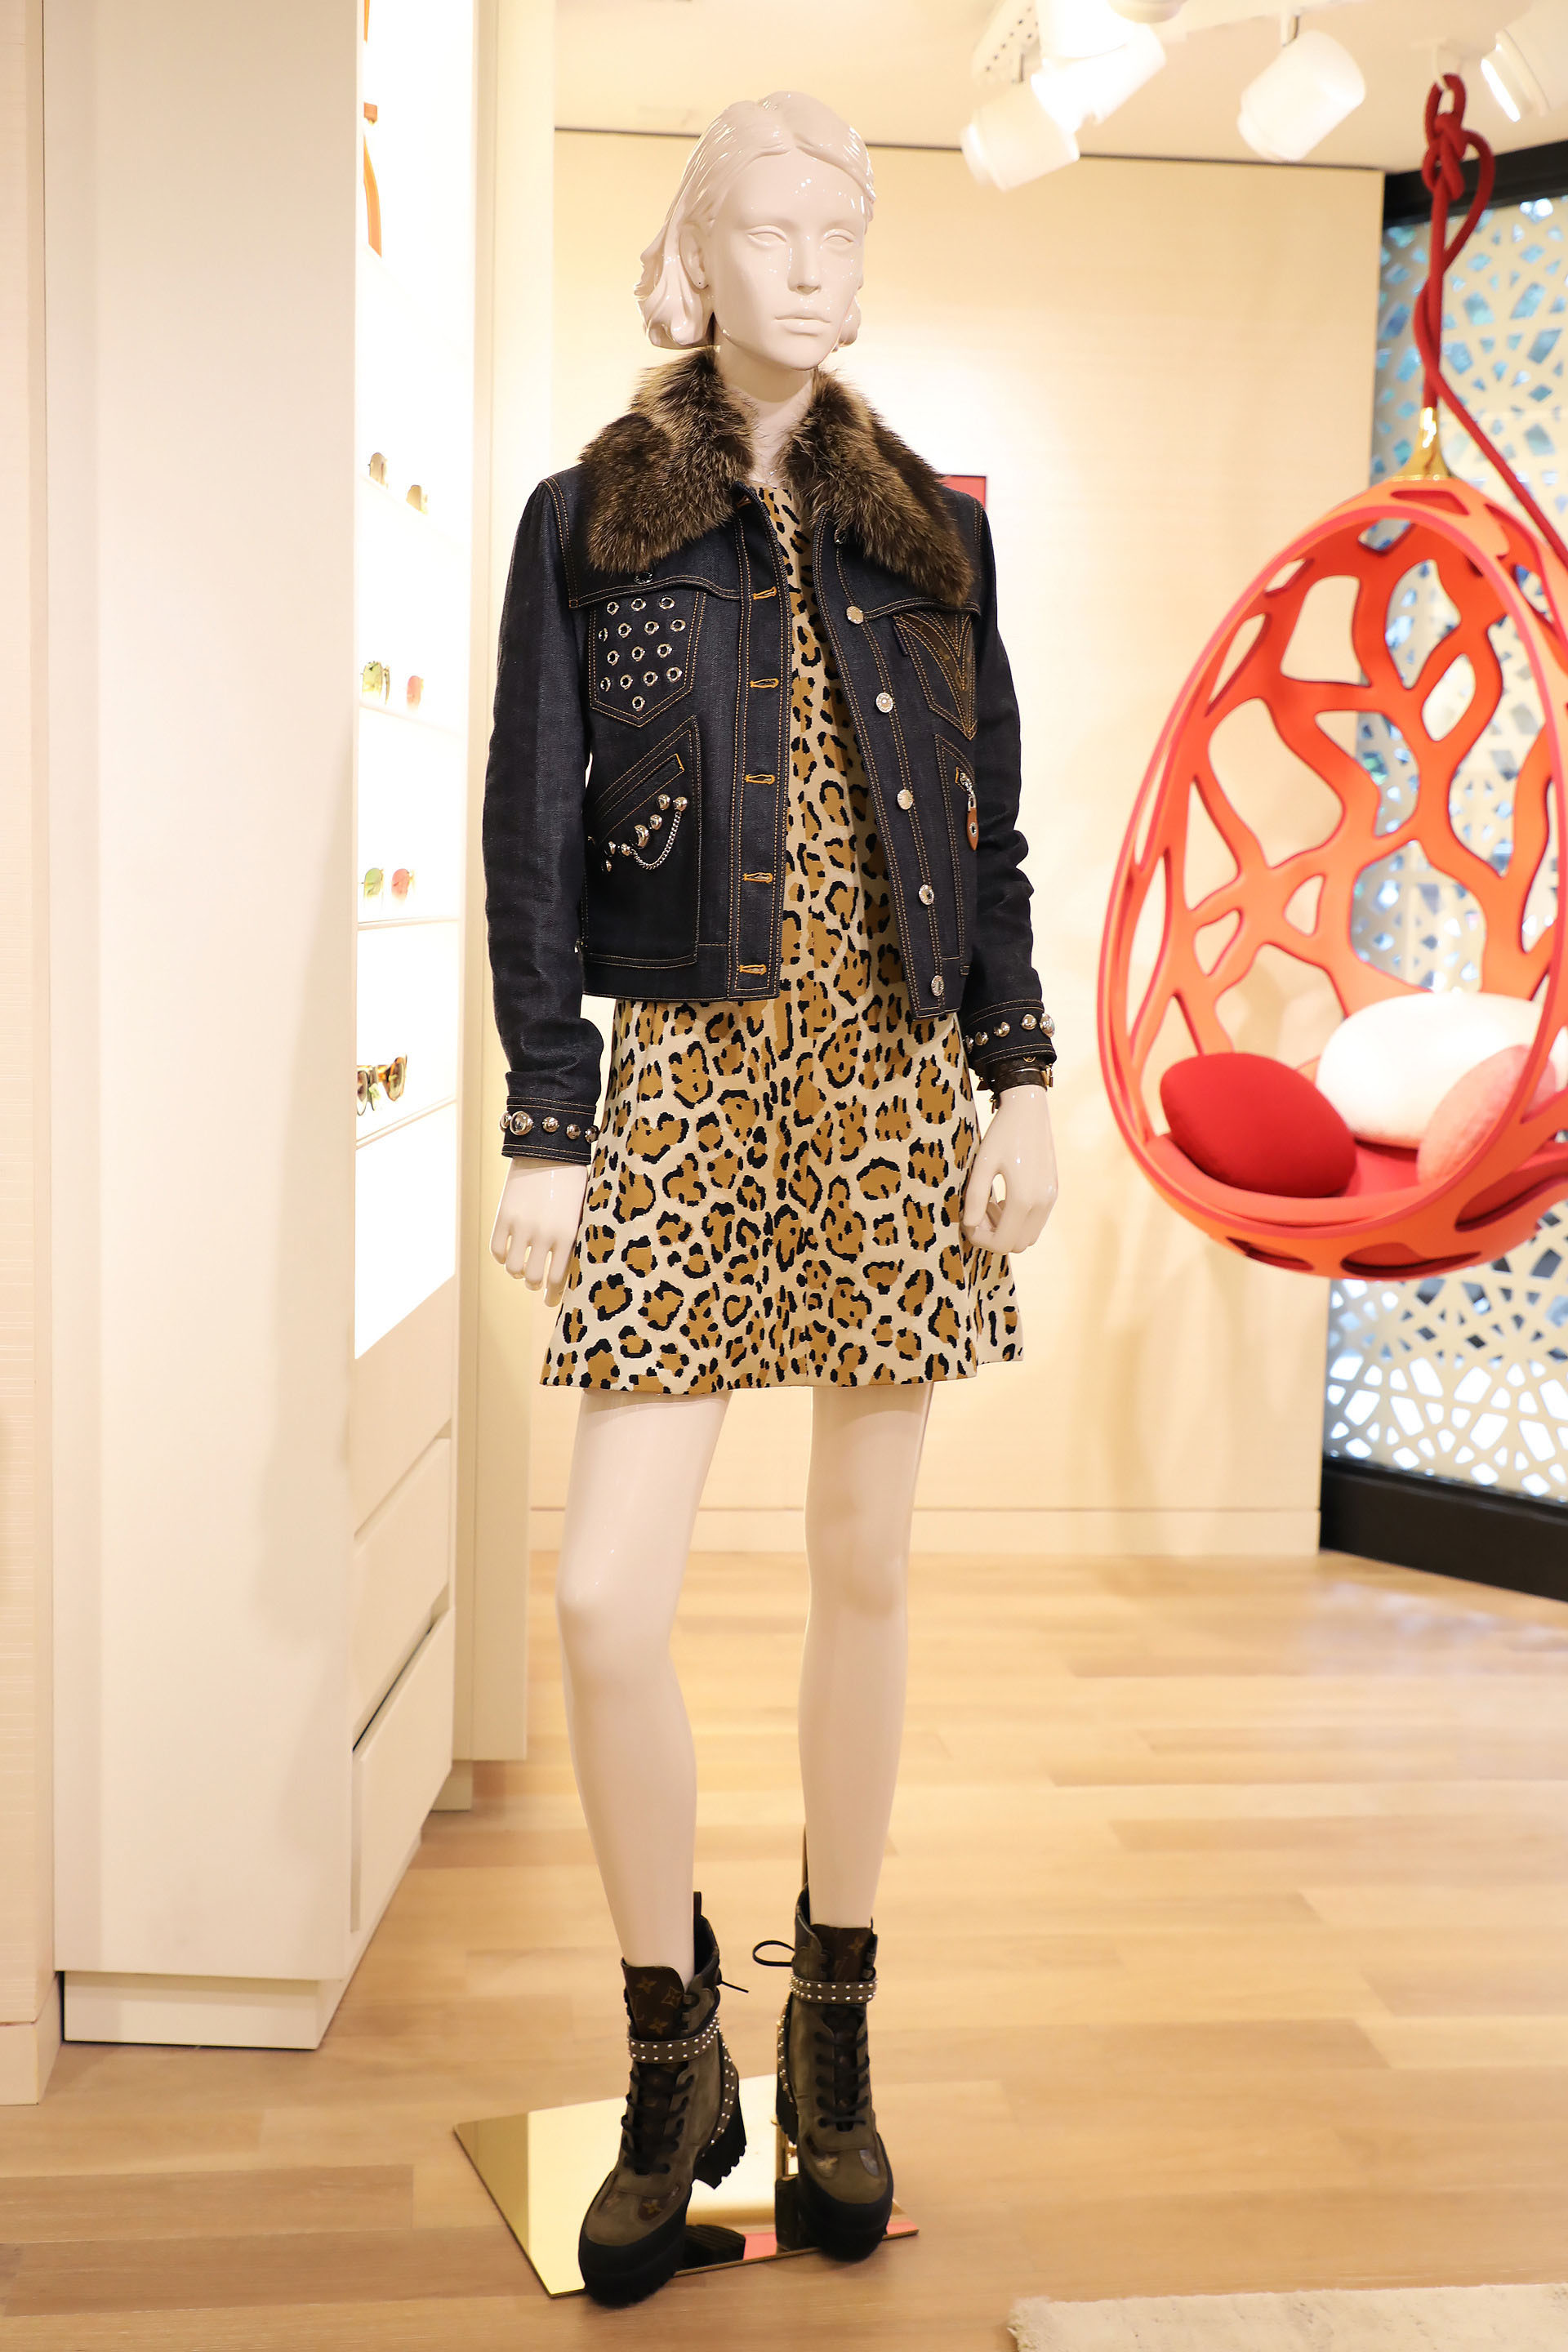 Vestido line dress animal print $57.000 con campera Studded jacket $118.000